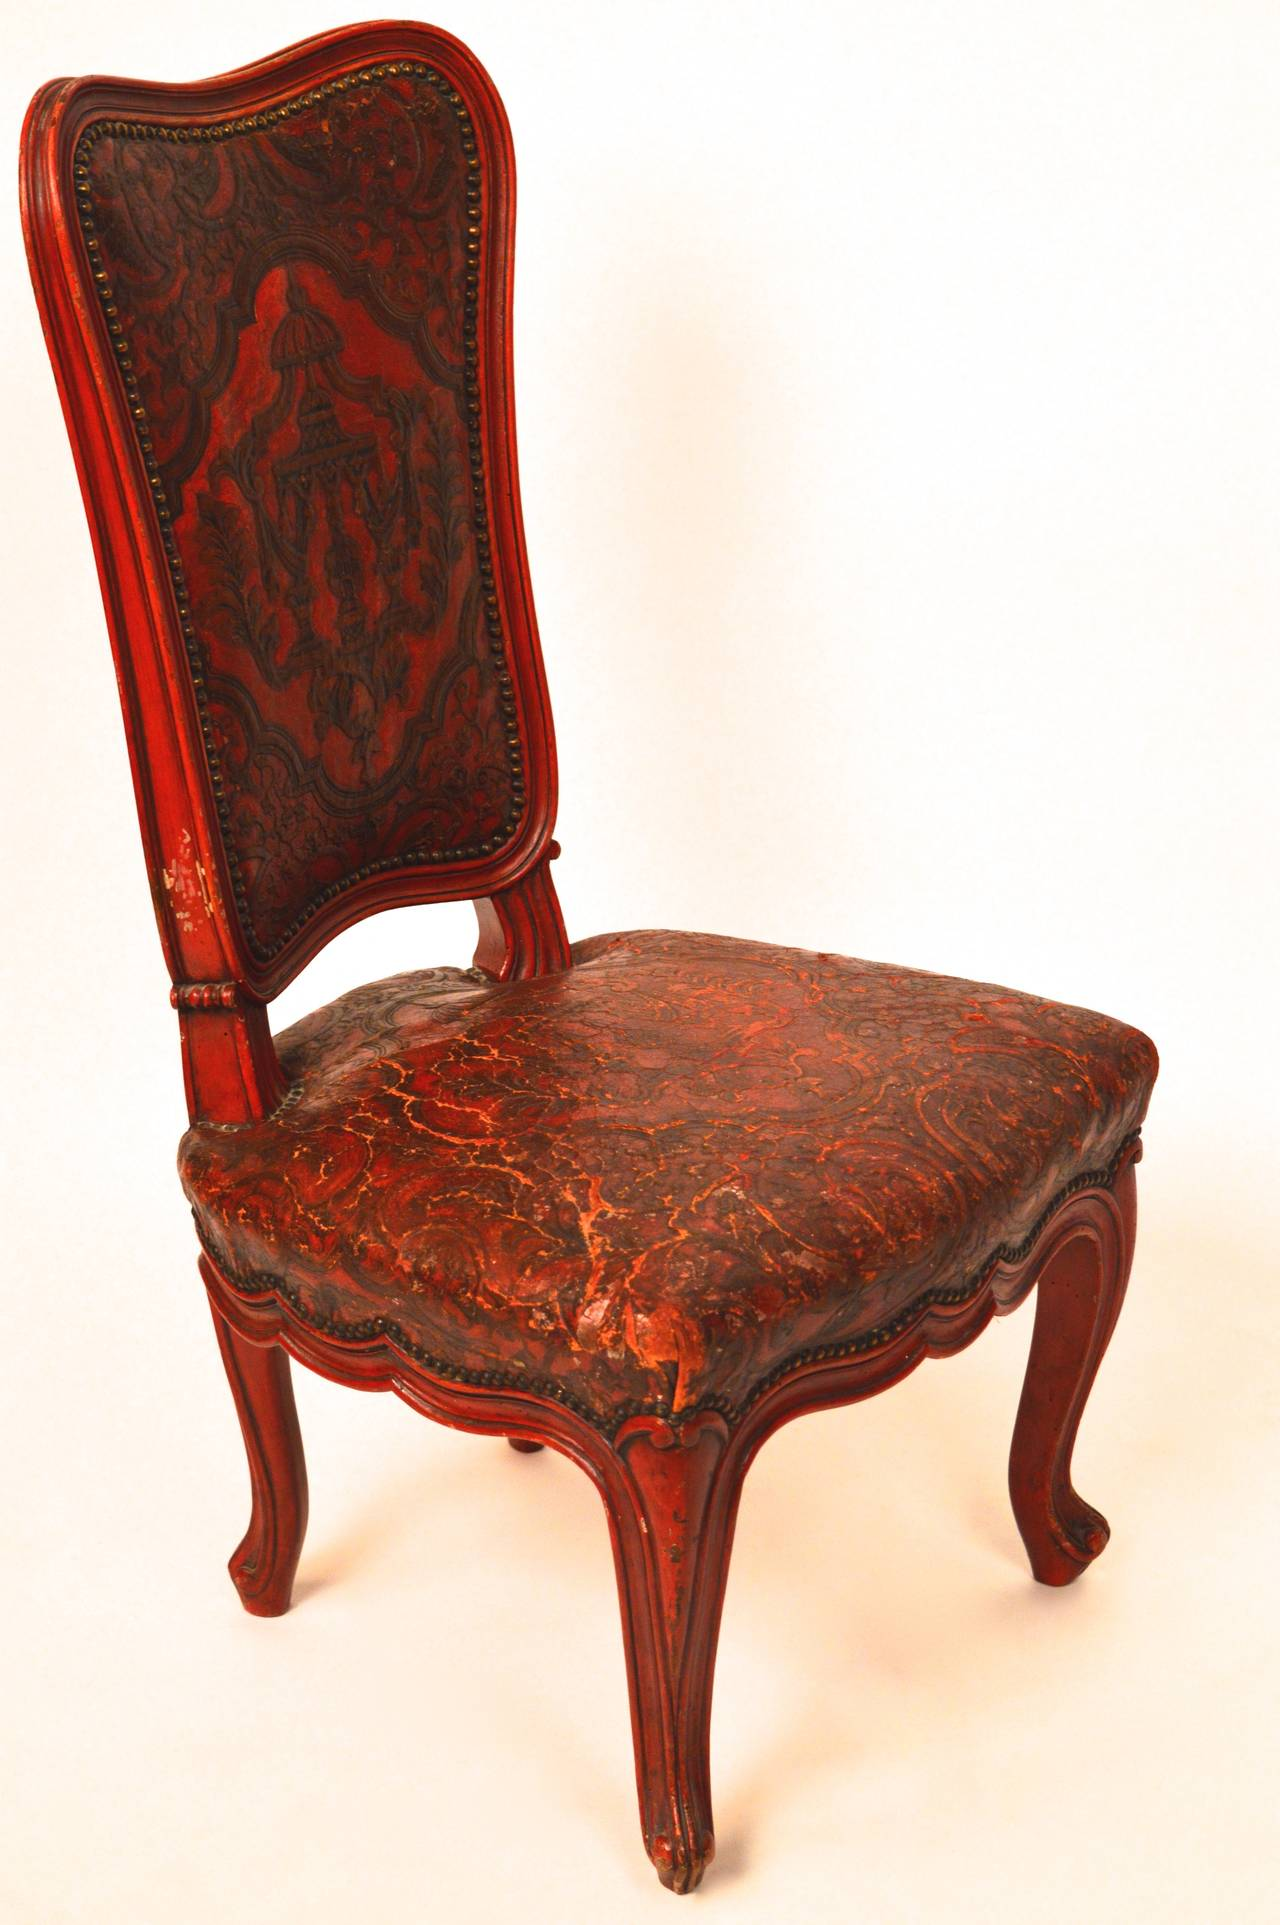 19th Century Dutch Childrens Chair With Chinoisserie